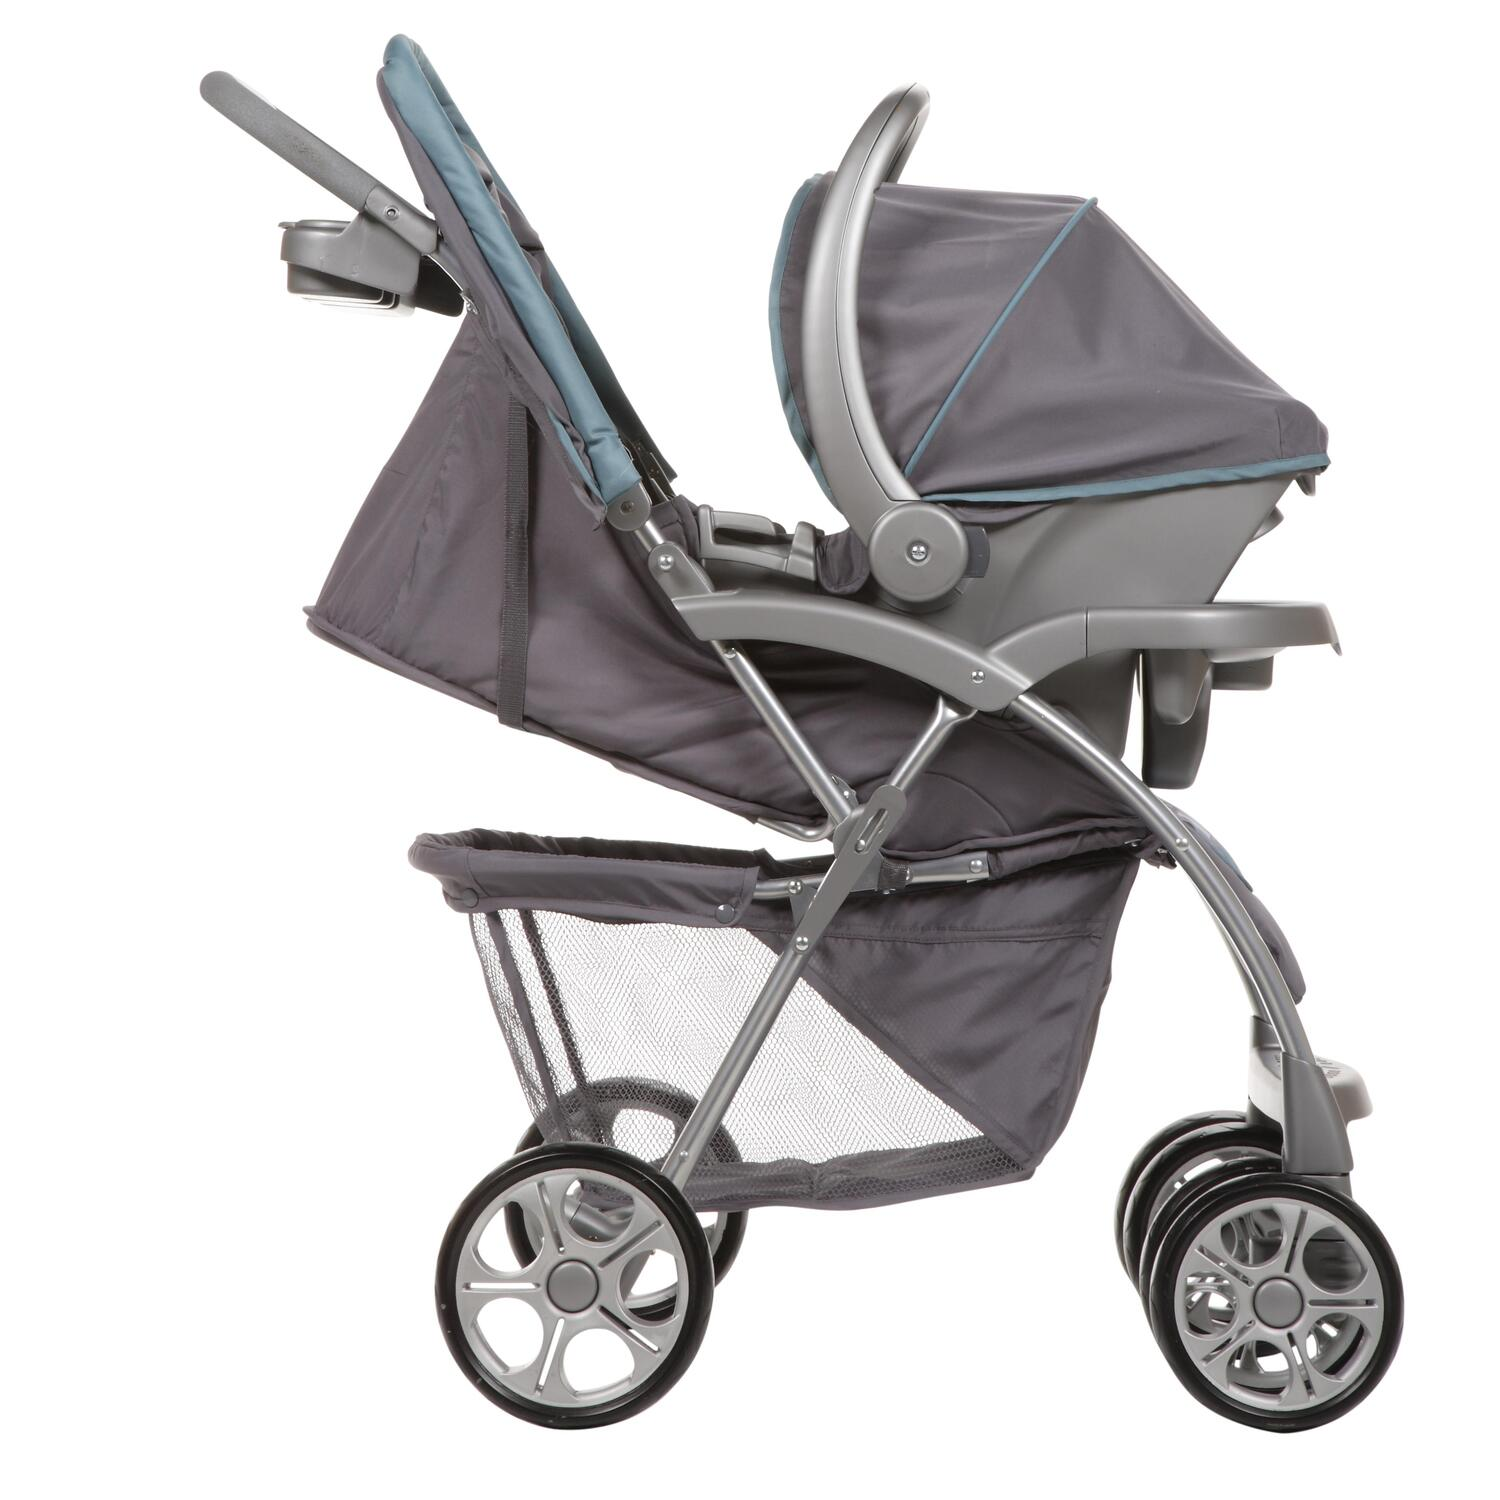 Safety First Saunter Travel System Extra Base